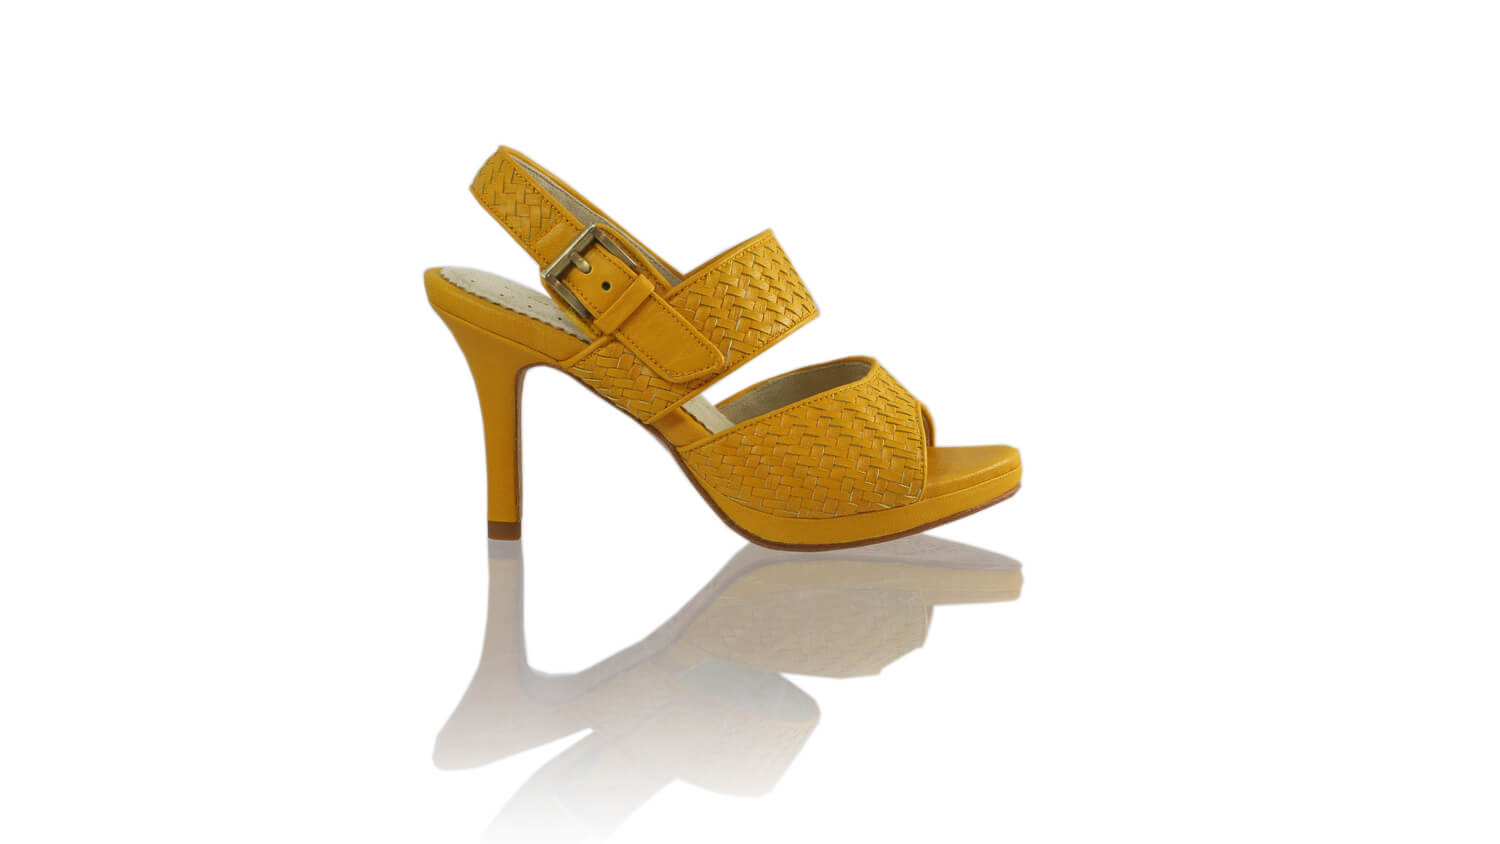 Leather-shoes-Danny PF 90MM SH-01 - Yellow-sandals higheel-NILUH DJELANTIK-NILUH DJELANTIK